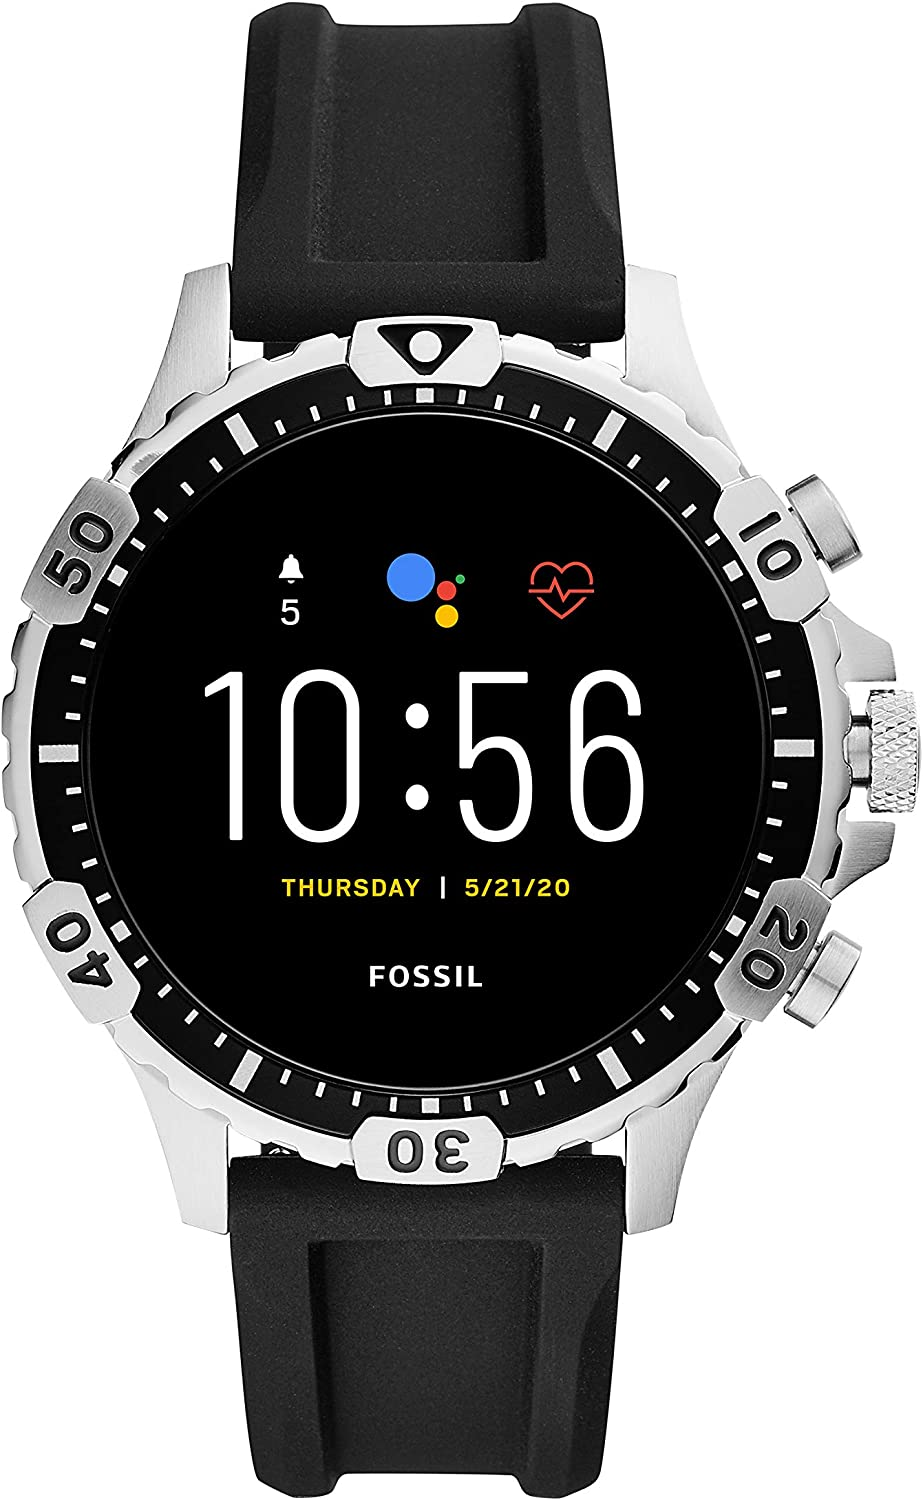 Fossil Men's Gen 5 Garrett Stainless Steel Touchscreen Smartwatch with Speaker, Heart Rate, GPS, Contactless Payments, and Smartphone Notifications